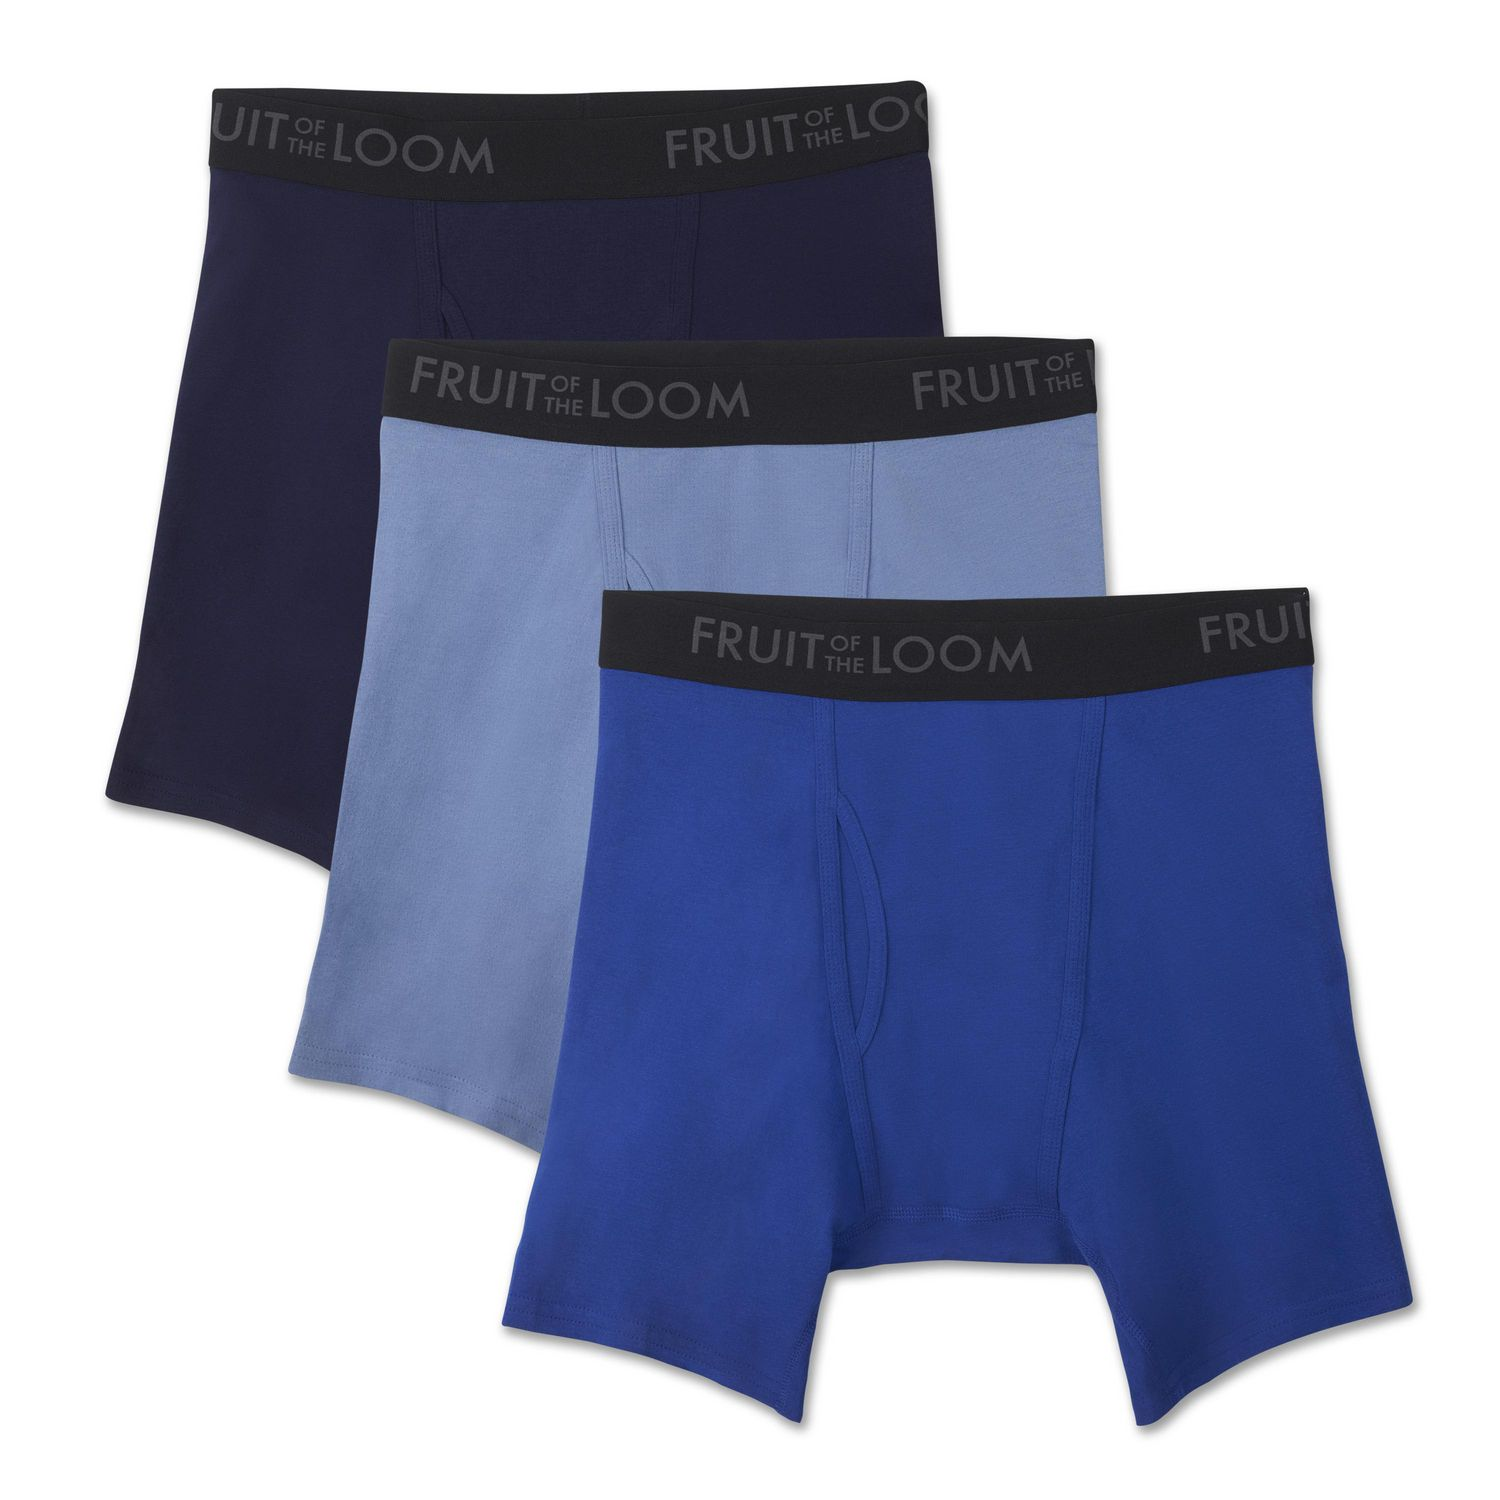 Fruit of the Loom Men s Breathable Boxer Briefs - Pack of 3 - image 1 of  zoomed image 246caa1eeec6